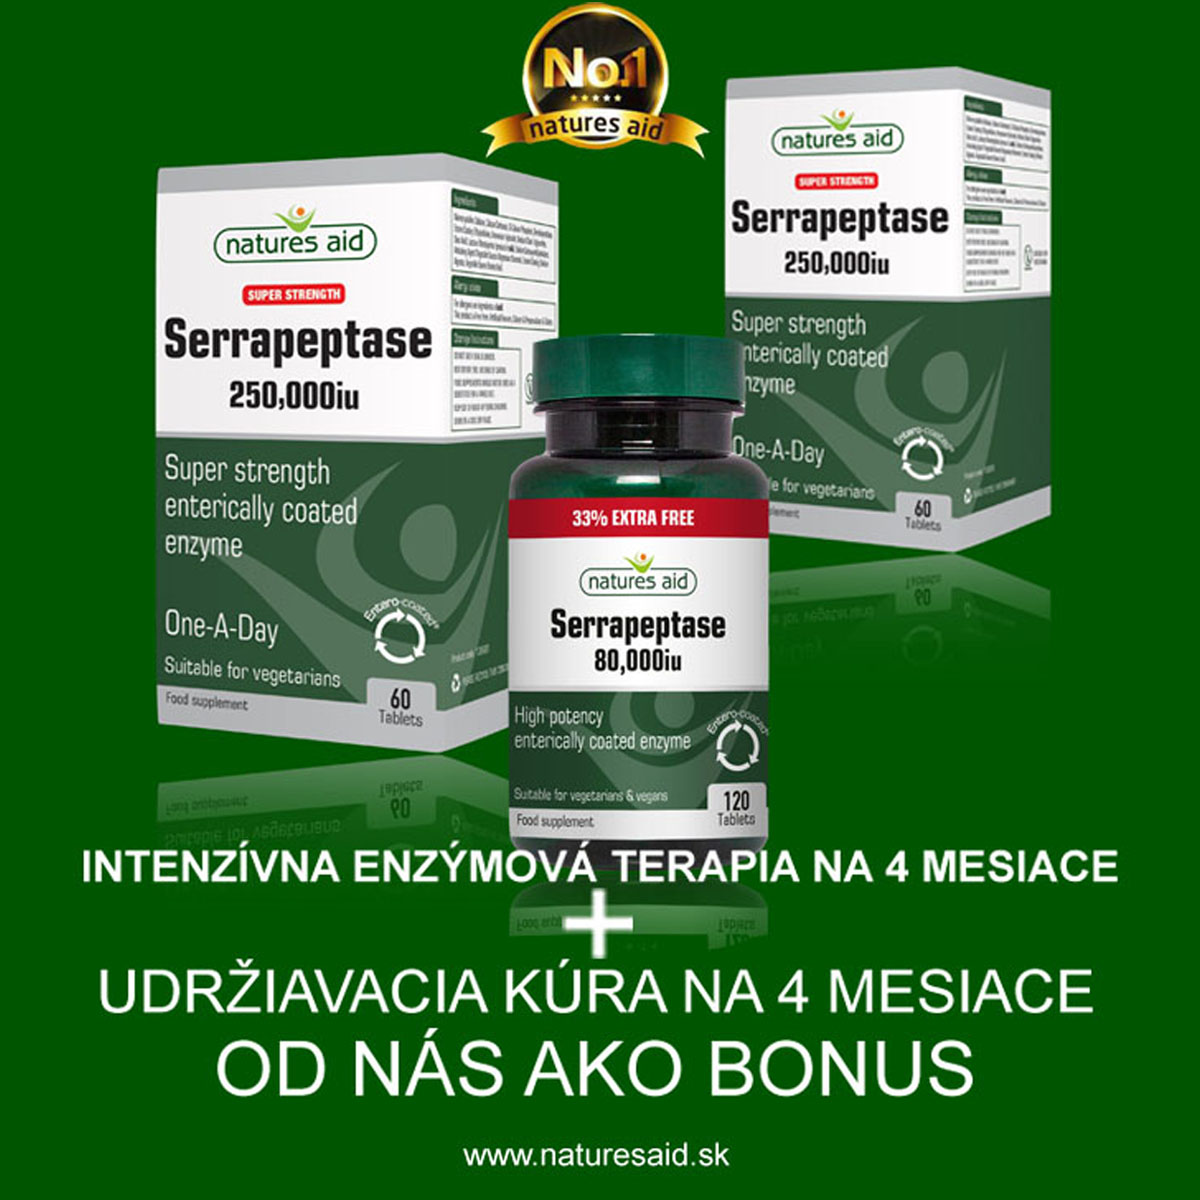 https://www.naturesaid.sk/home/112-serrapeptase-250000iu-60tbl.html